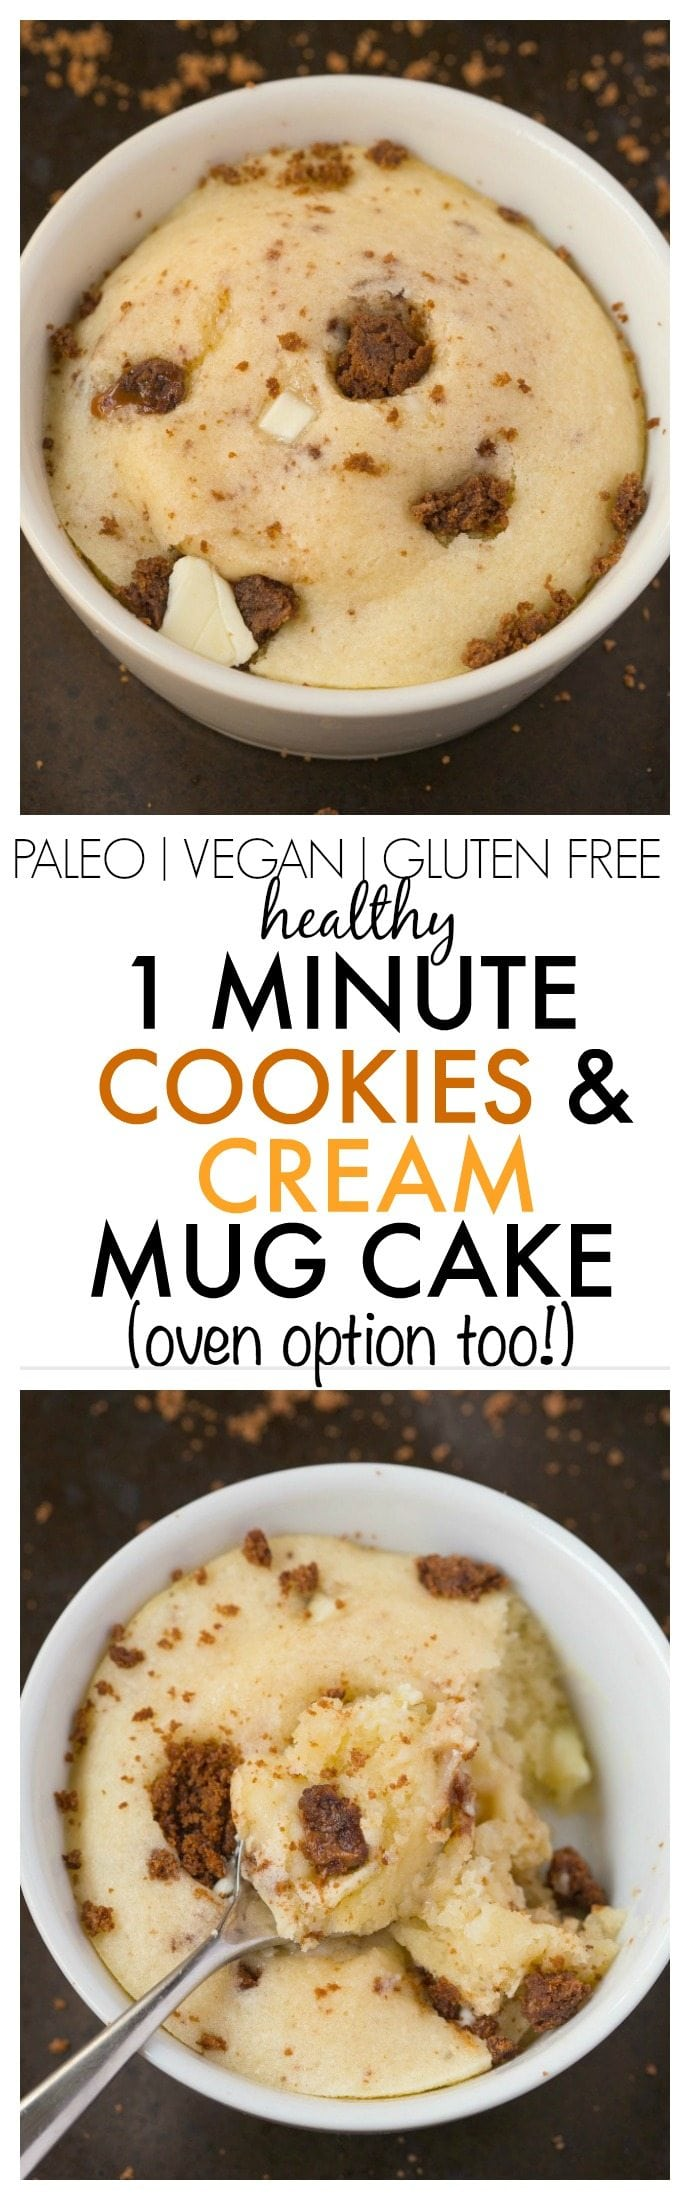 Healthy 1 Minute Cookies and Cream Mug Cake made with NO butter, NO oil. NO grains and NO sugar, yet incredible- Oven option too! {vegan, gluten free, paleo recipe}- thebigmansworld.com